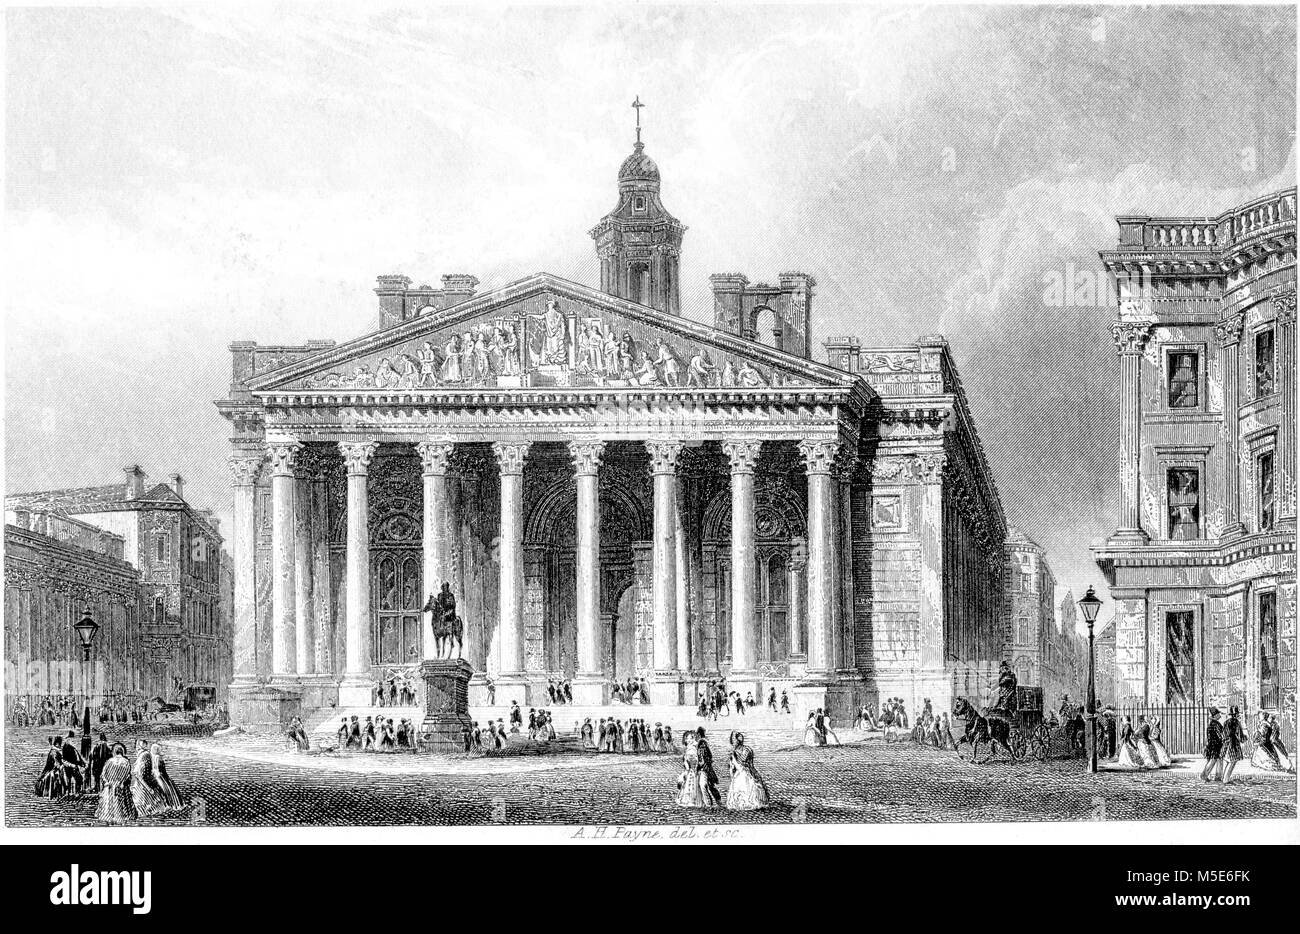 An engraving of the Royal Exchange, London scanned at high resolution from a book printed in 1851. Believed copyright - Stock Image